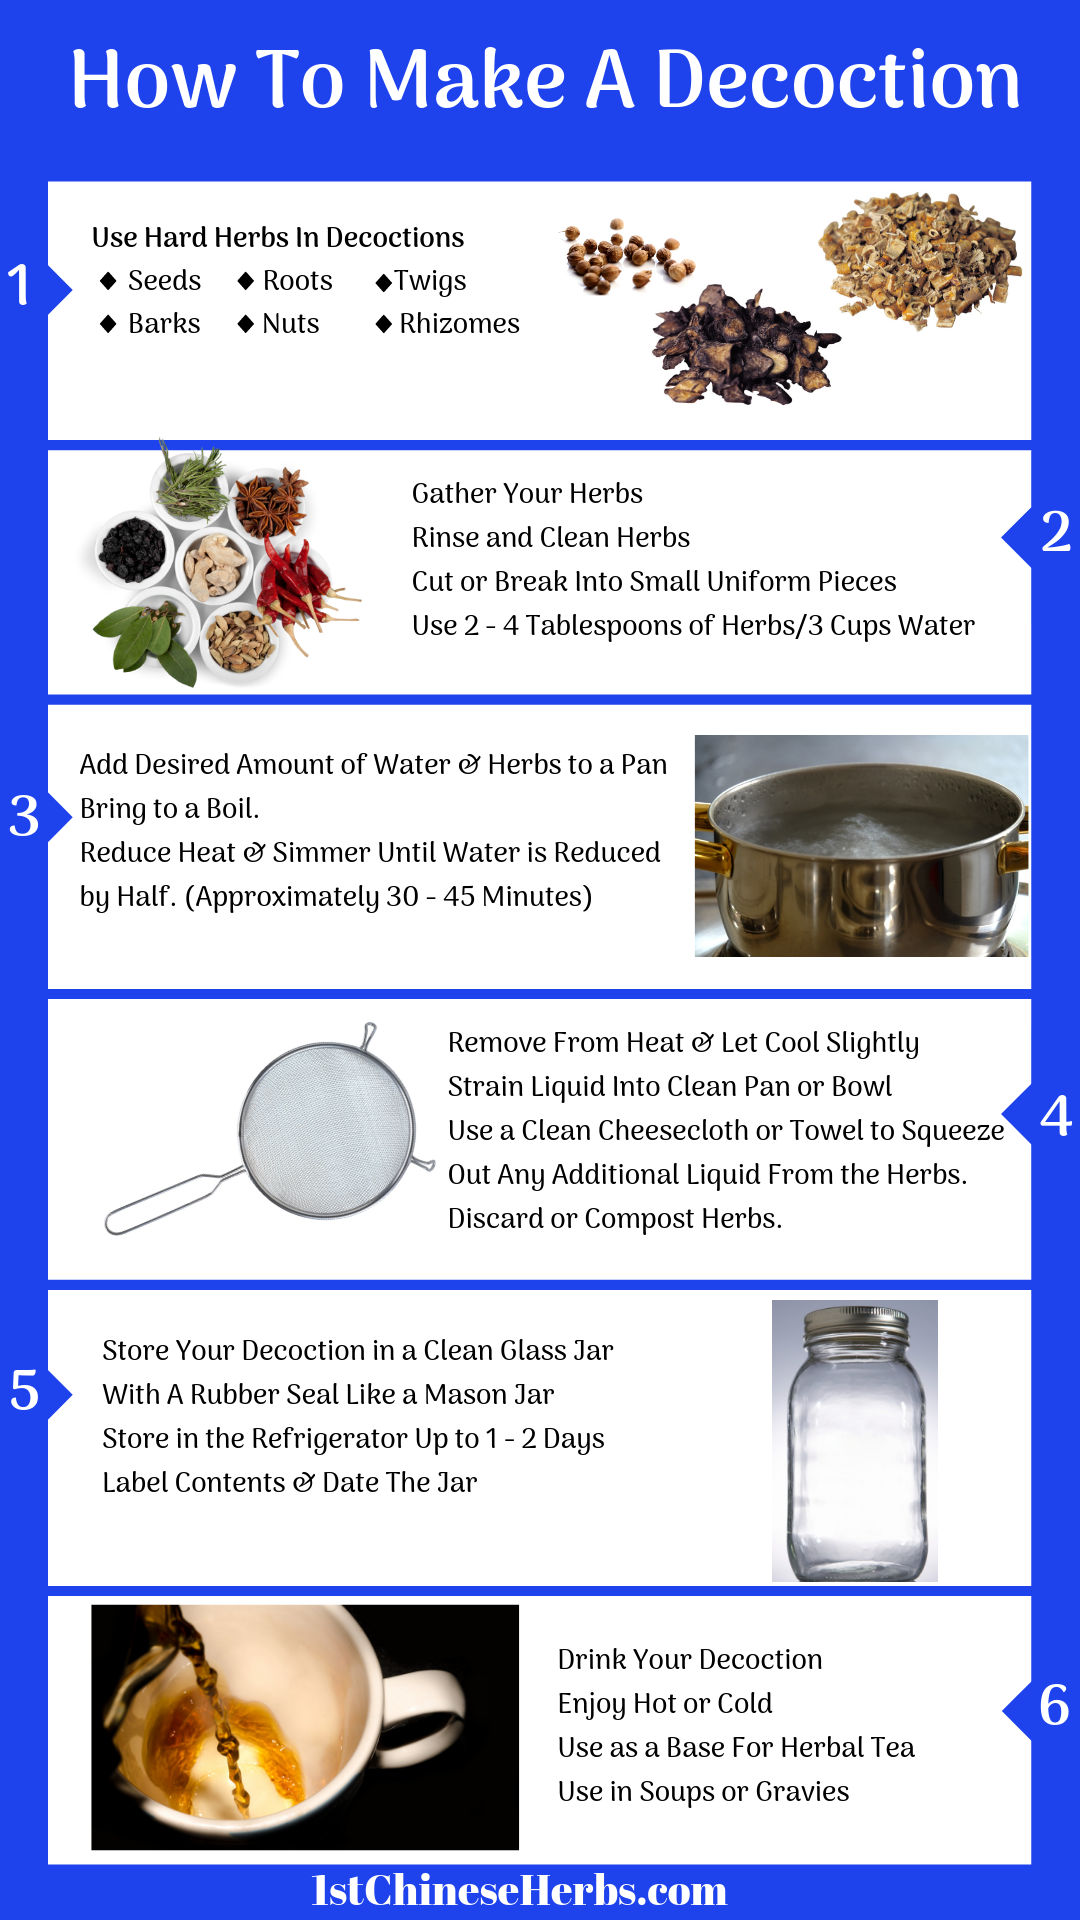 how-to-make-a-decoction.png